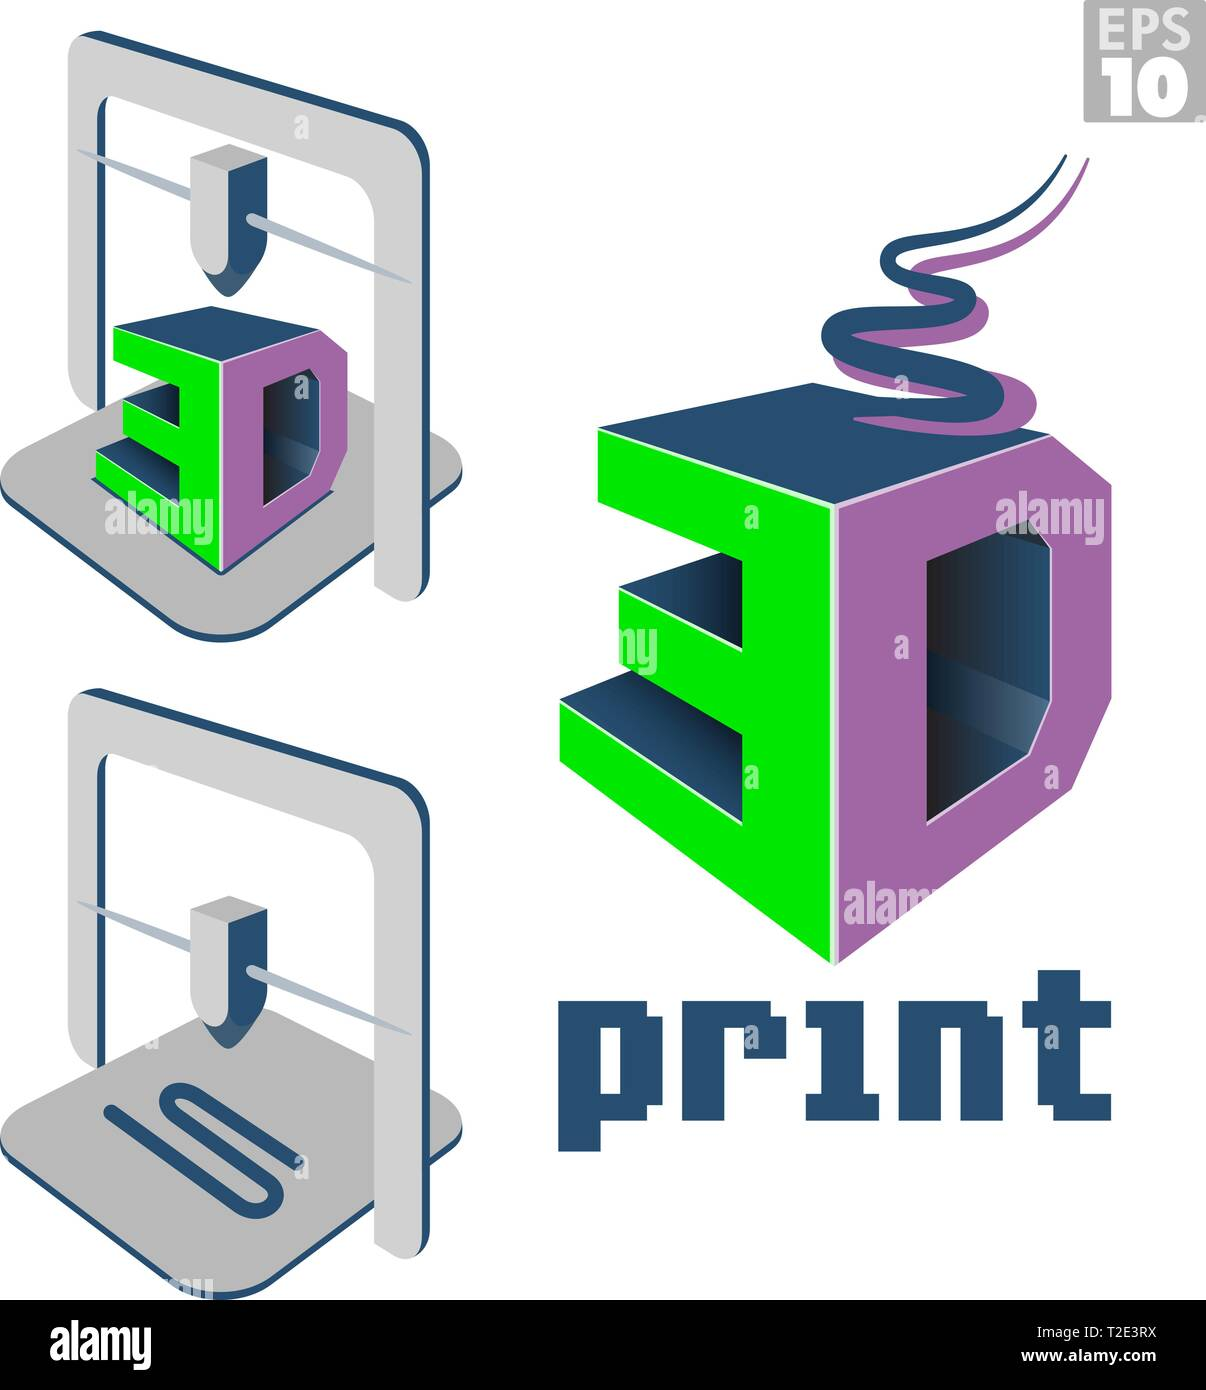 3D print logo with melted filament and 3d printer machine with printed designs. - Stock Vector